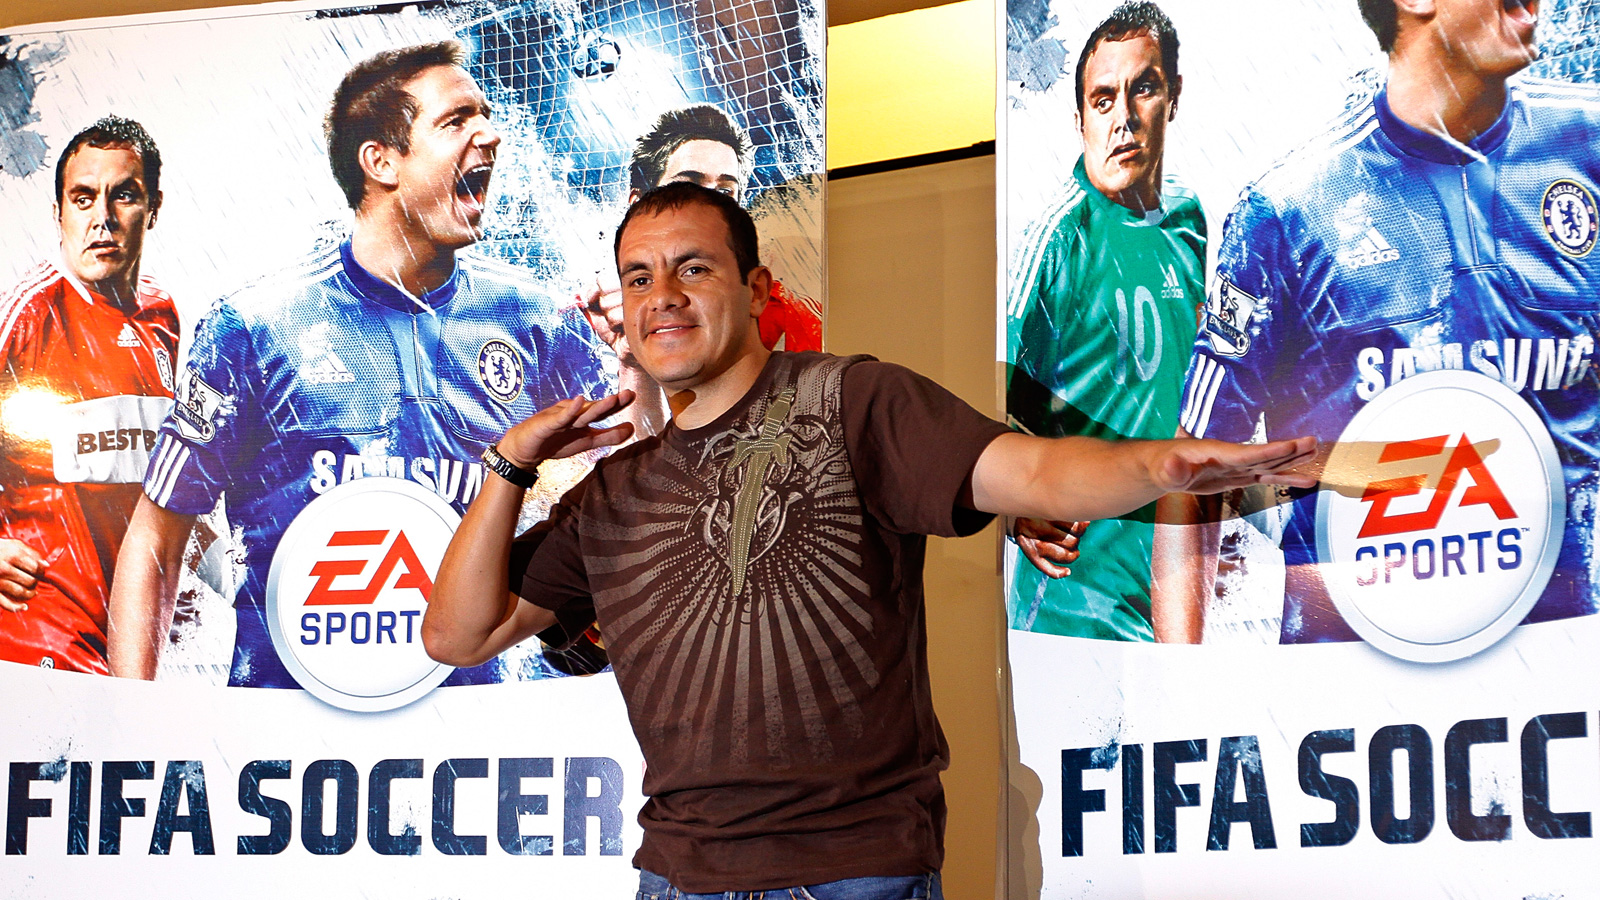 Blanco poses as part of EA Sports's FIFA 2010 cover release for the popular video game in North America.